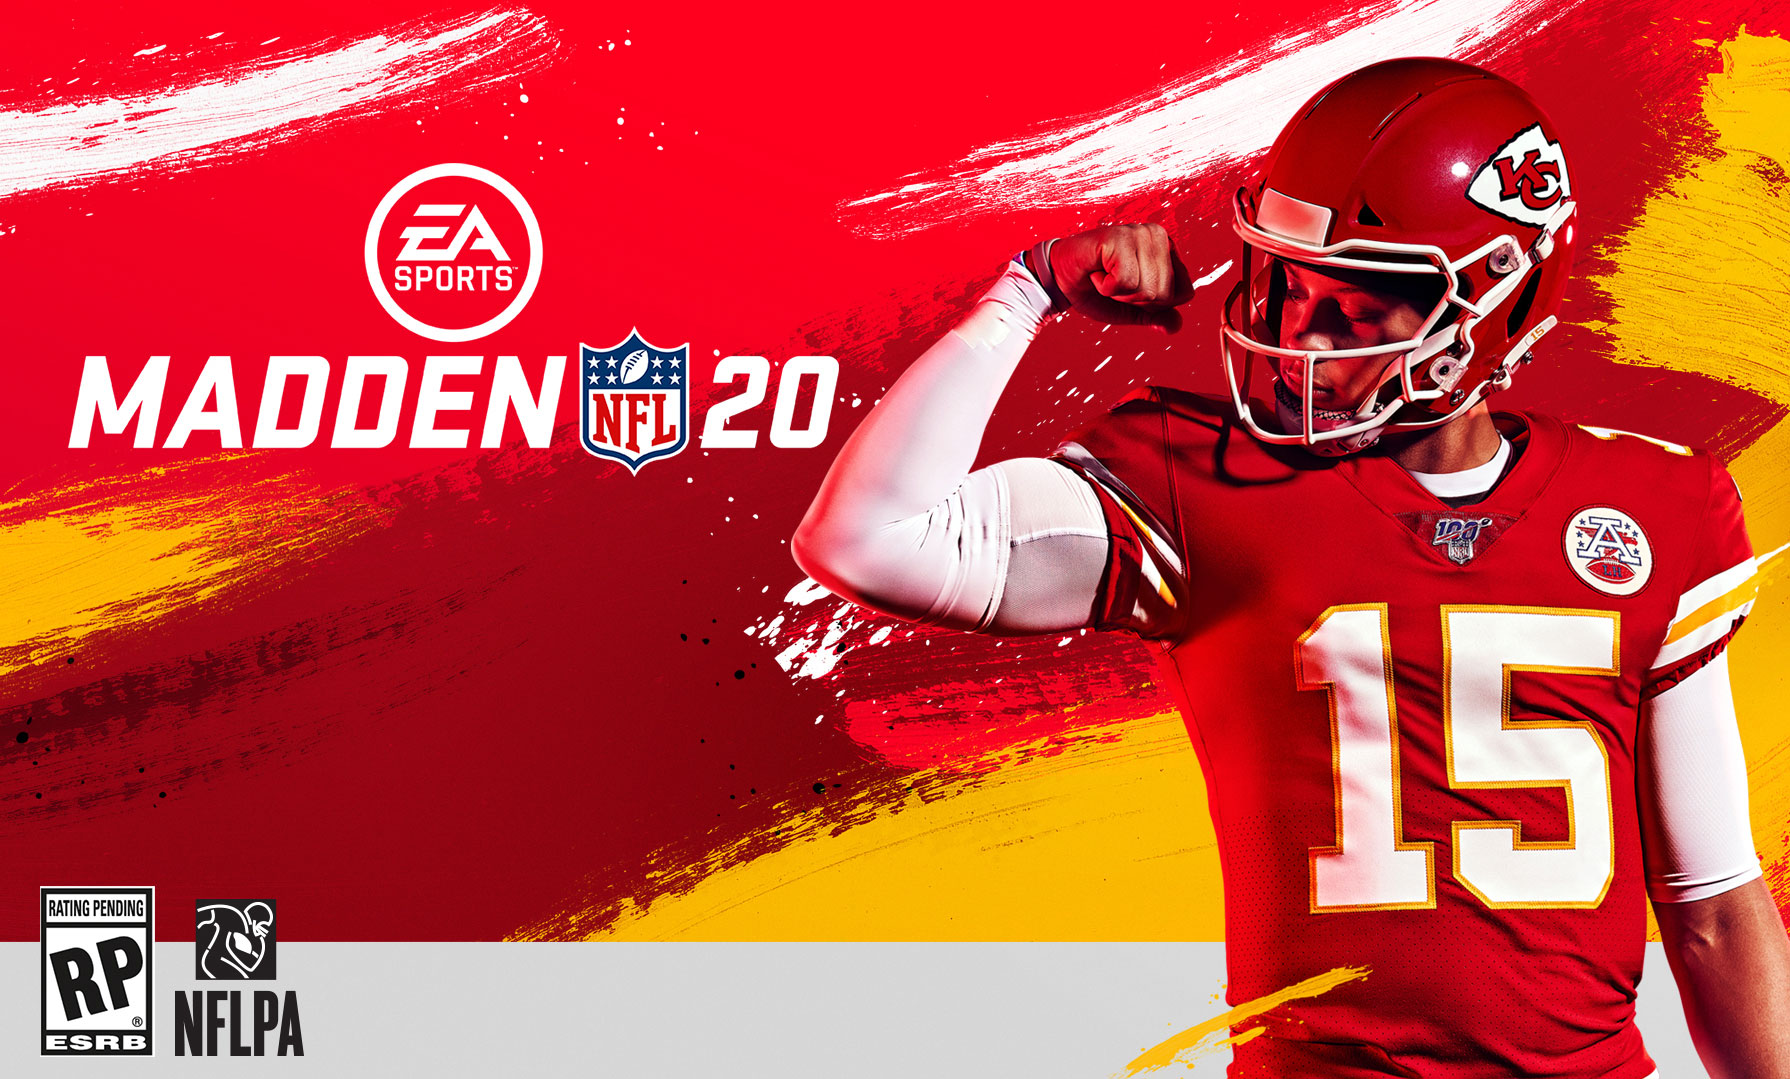 Enter for your chance to win a trip to attend an NFL regular season game valued at $9,500 when you enter the NFL 100 Experiences of a Lifetime EA Sports Madden 20 Contest